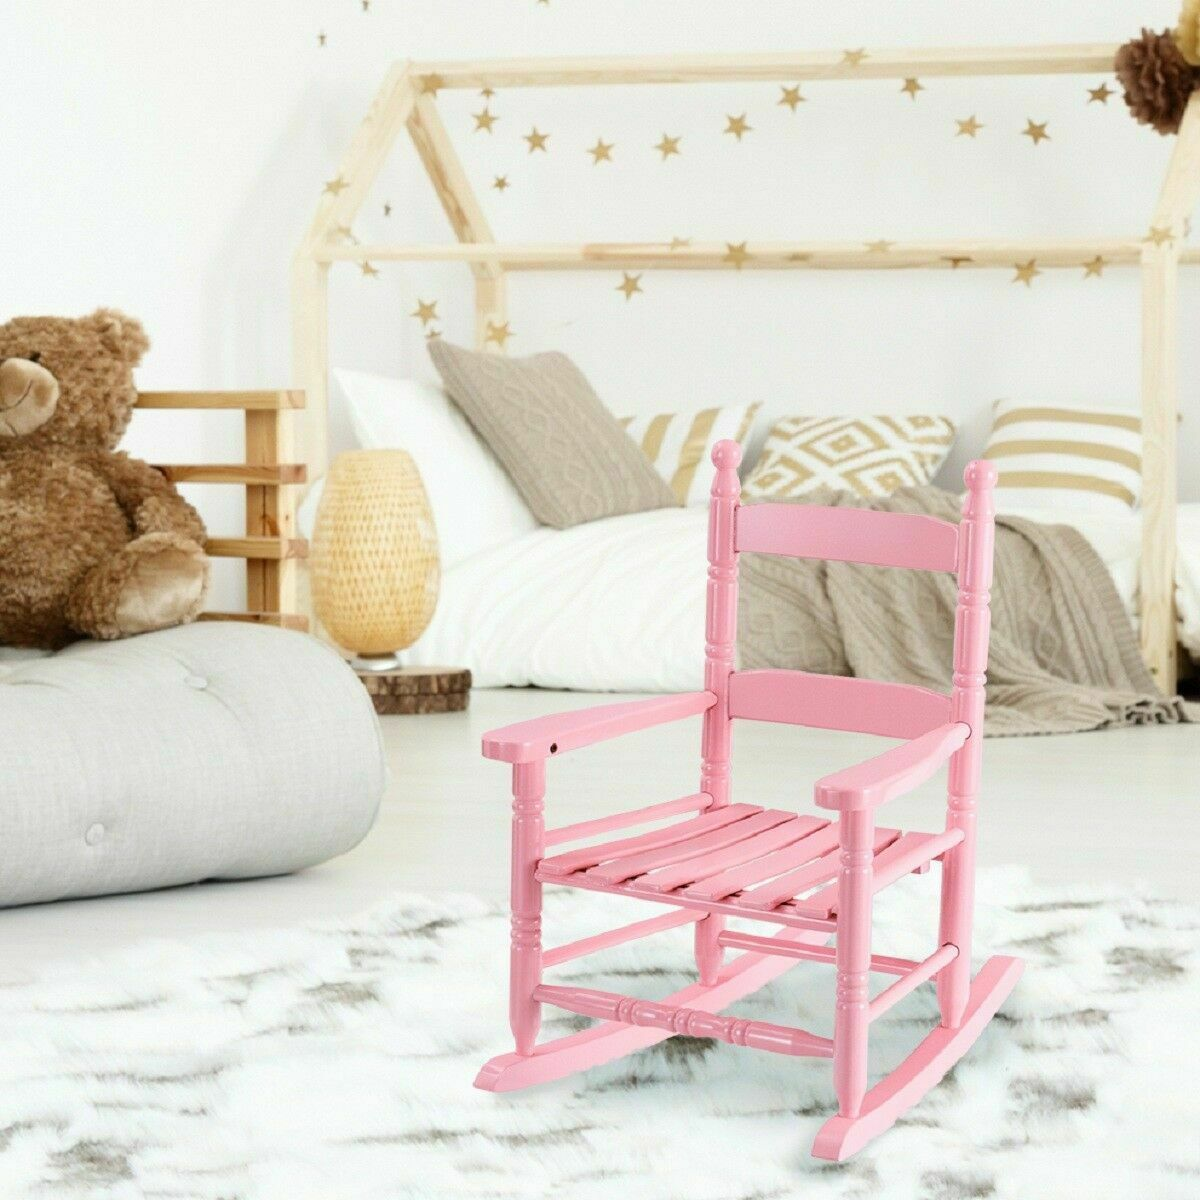 Incredible Classic Pink Wooden Children Kids Rocking Chair Slat Back Furniture Bedroom Camellatalisay Diy Chair Ideas Camellatalisaycom